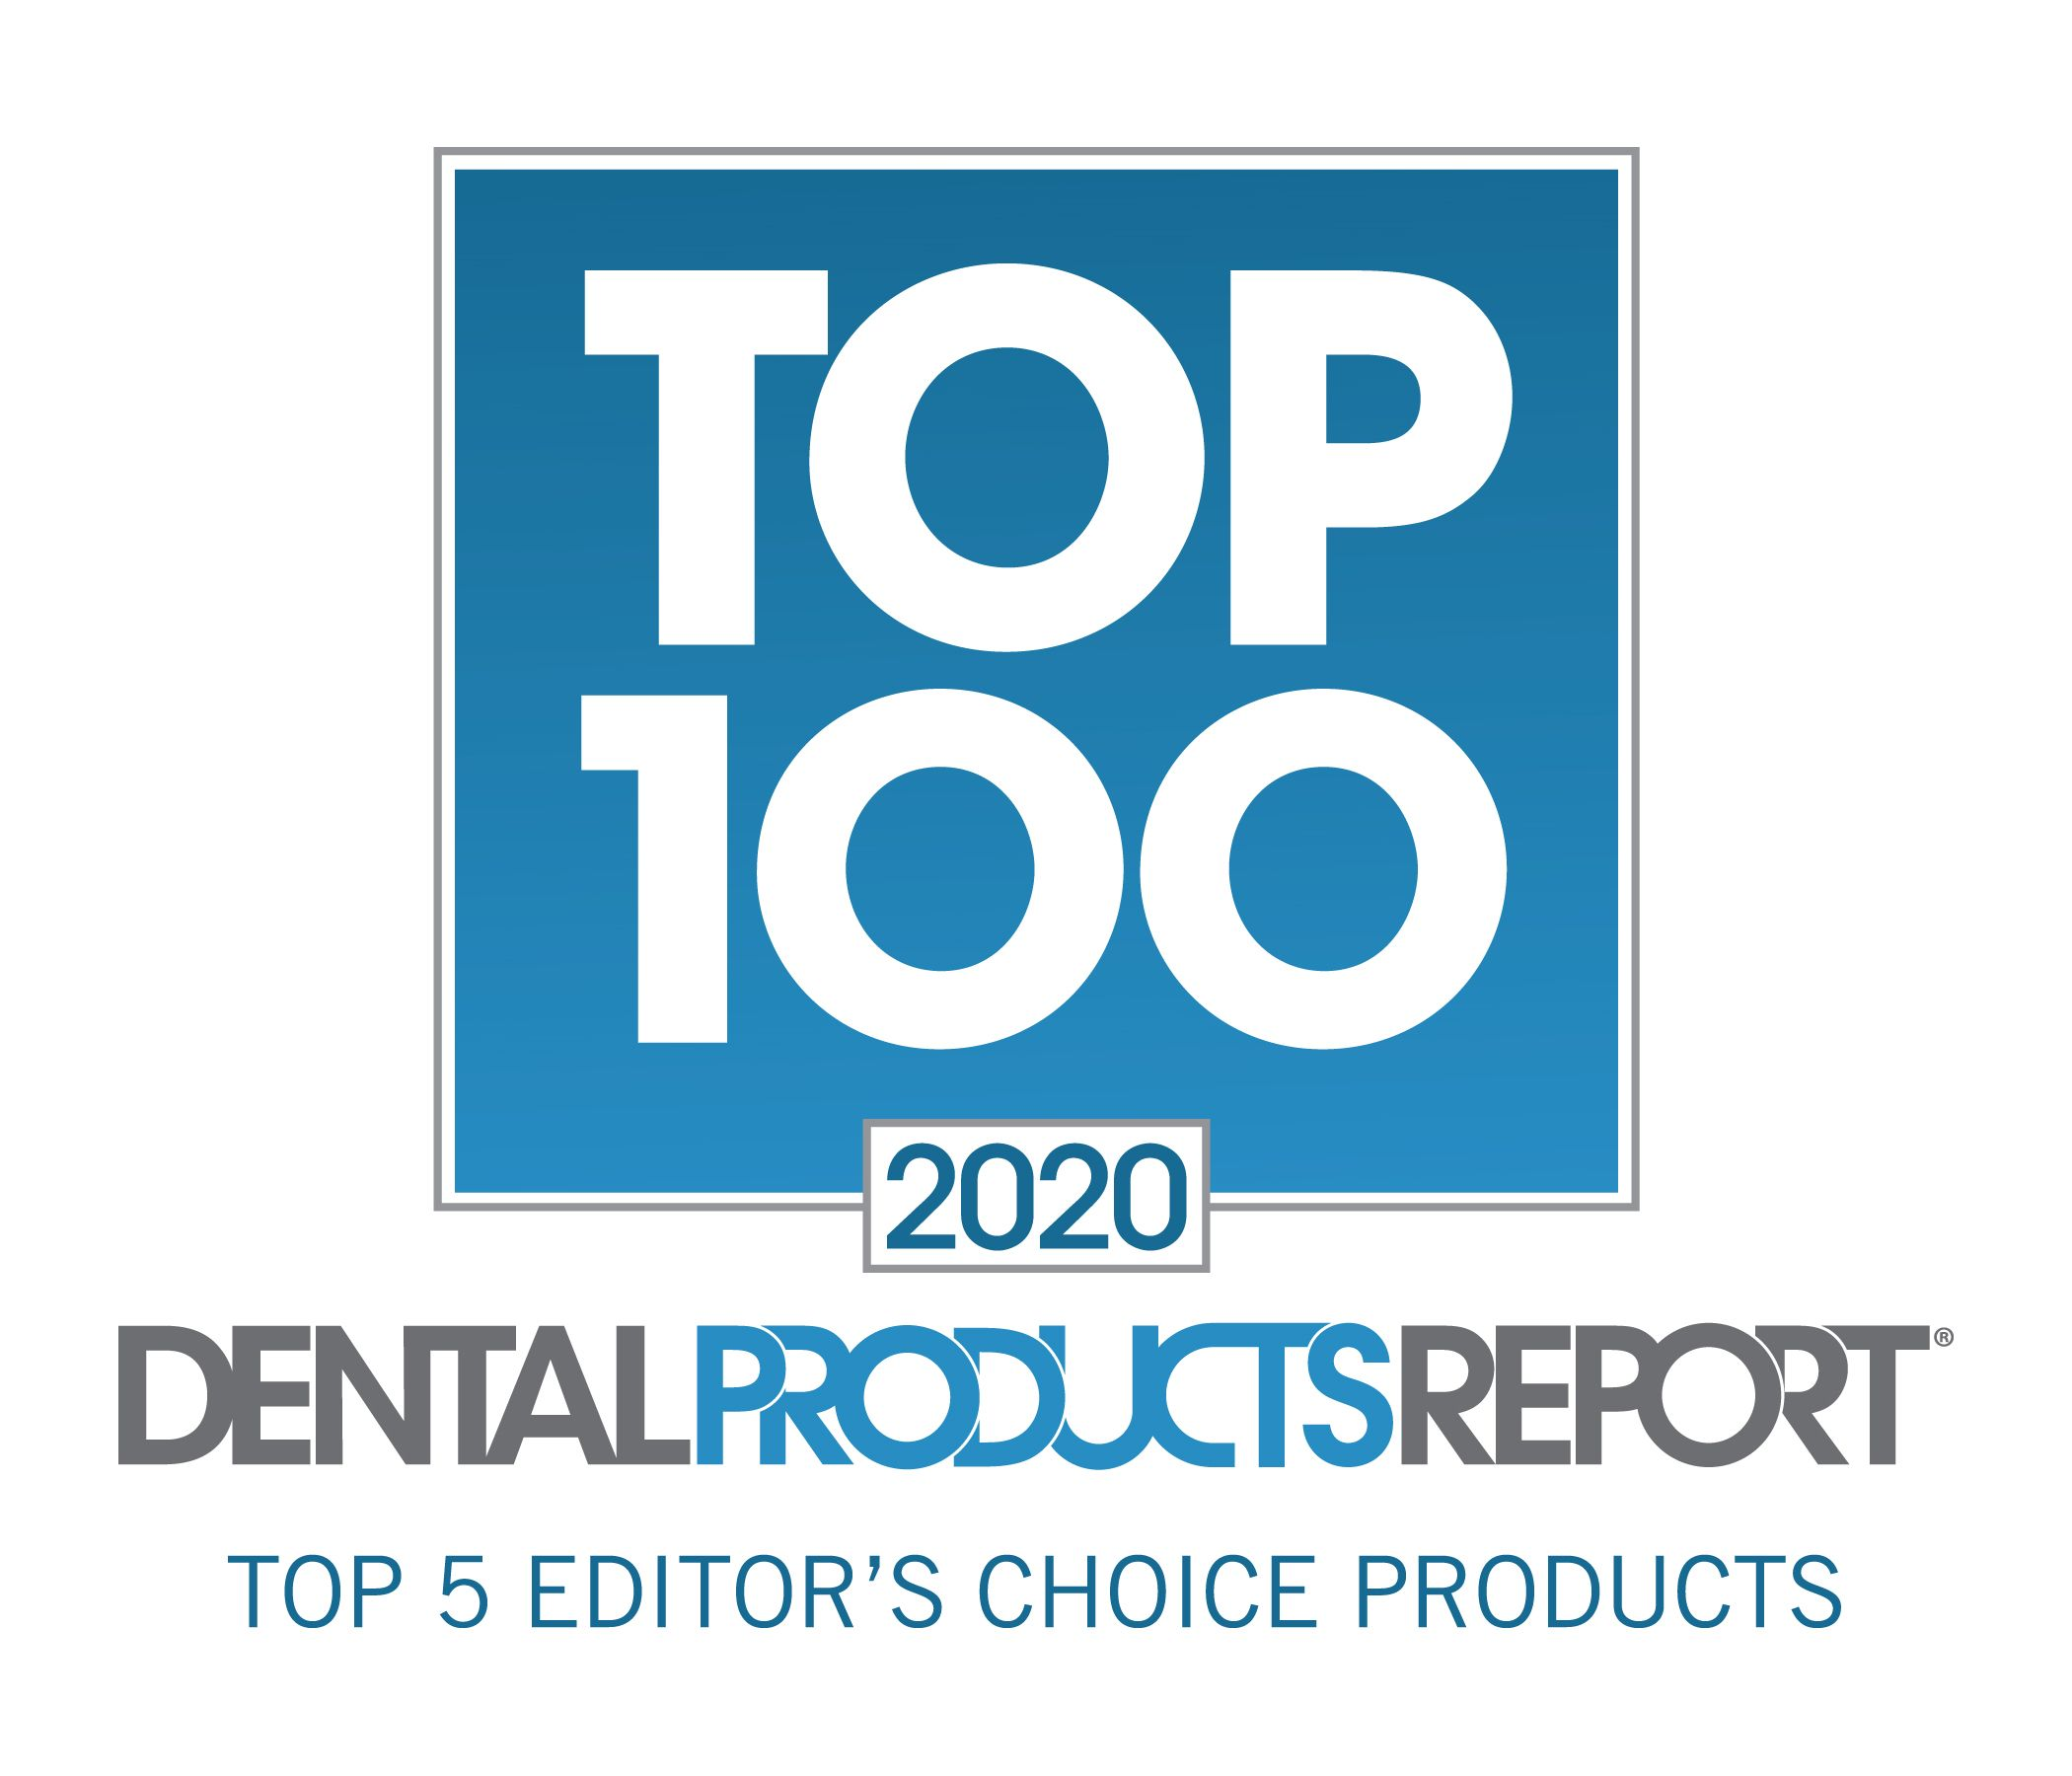 Top 5 Editor's Choice Products of 2020